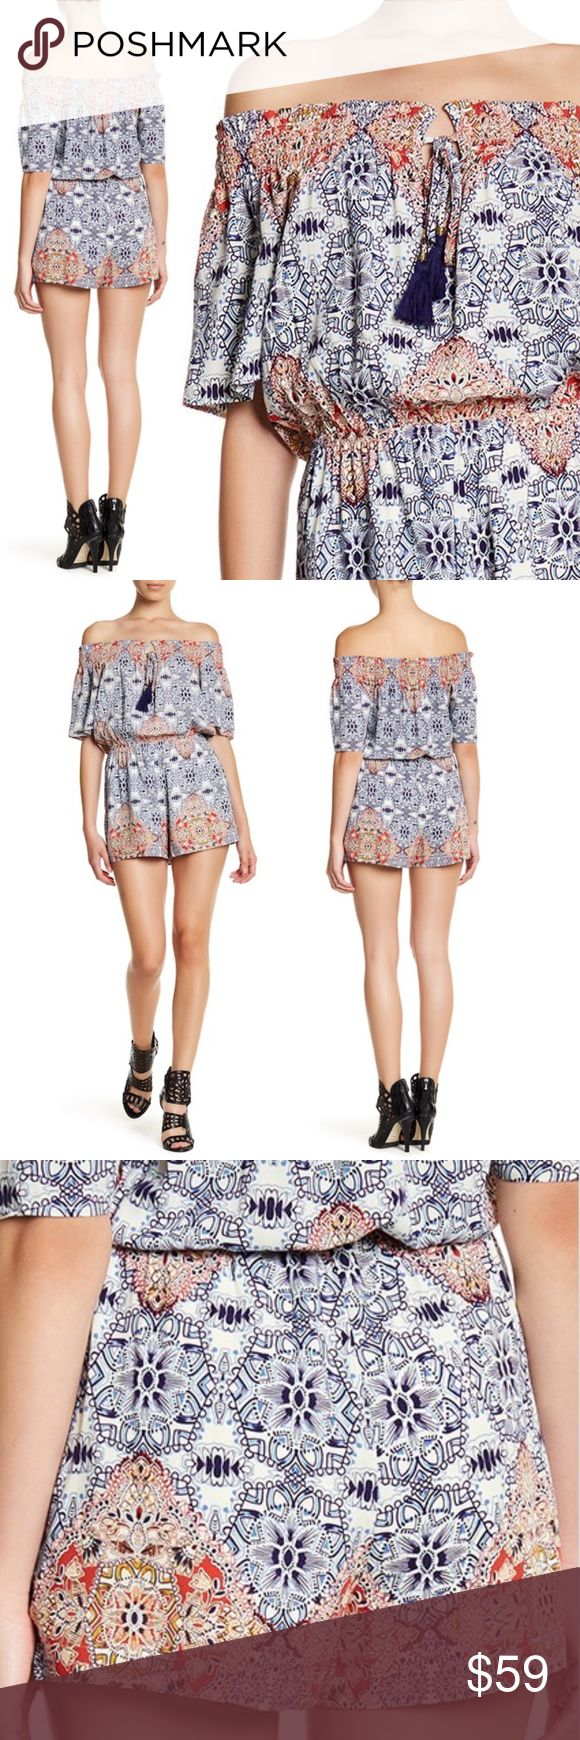 """Daniel Rainn Off Shoulder Romper Coral Aztec Geo MSRP $78 Sold out!  Size Petite XL Color Coral multi  DR2 by Daniel Rainn off-the-shoulder sexy romper Spit neck w/tie closure Short sleeves Smocked trim Elasticized waist Allover print Lined  NWT; no flaws 100% rayon Lining 100% poly Machine wash  Fits true to size (petite) Measures flat approx"""" Length 29 (top of chest to hem) Chest 22 Waist 18 to 24 stretched Hip 24.5  Offers warmly accepted - If we can't reach your offer, we'll send you the…"""